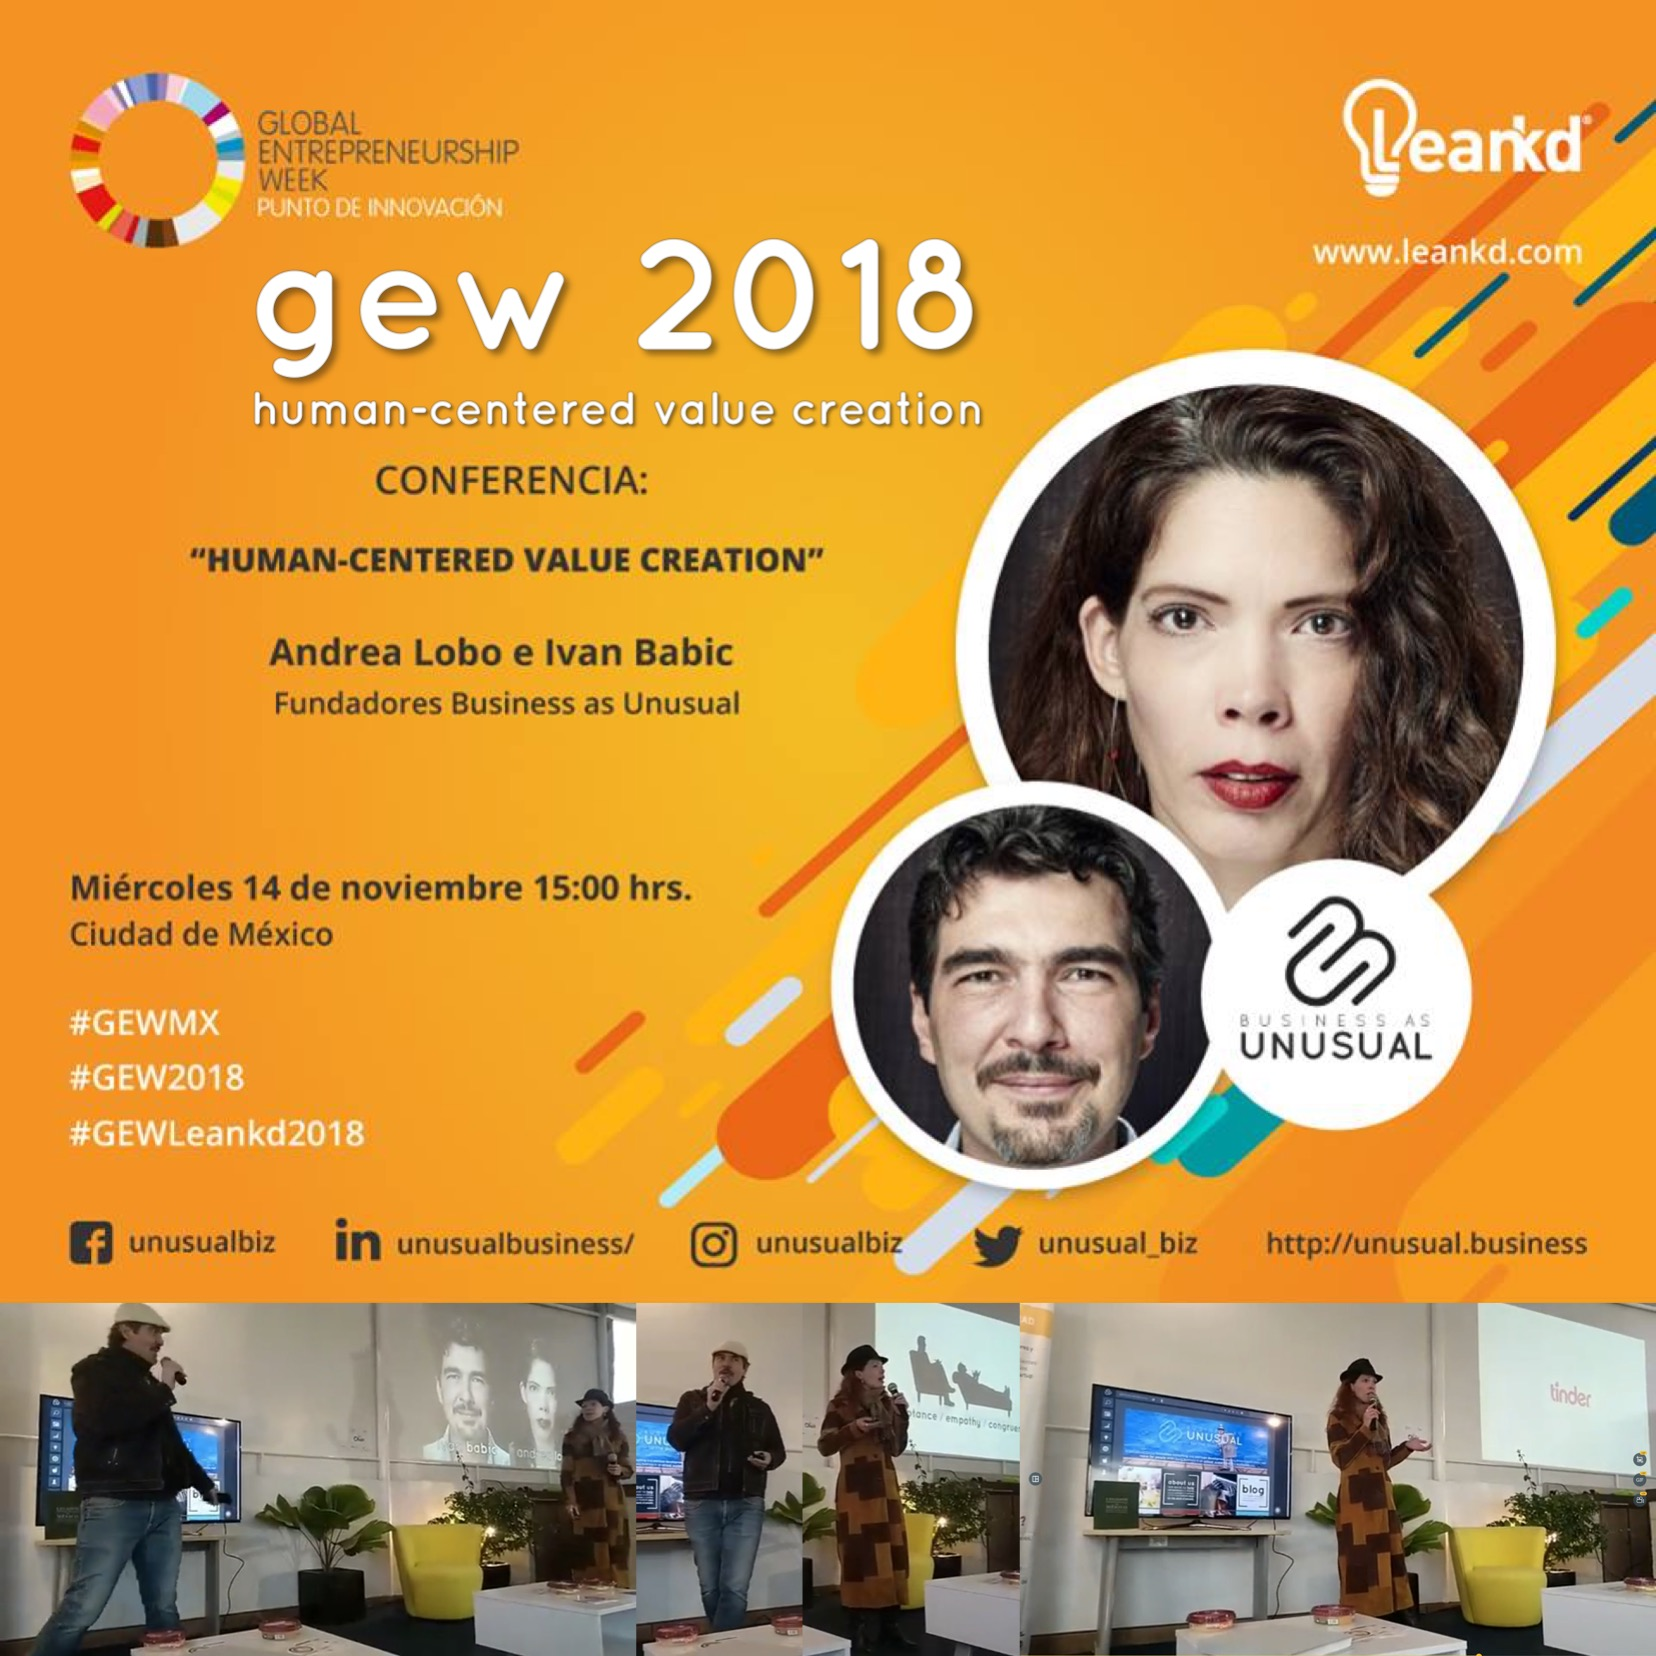 Global Entrepreneurship Week GEW 2018 - Human-Centered Value Creation